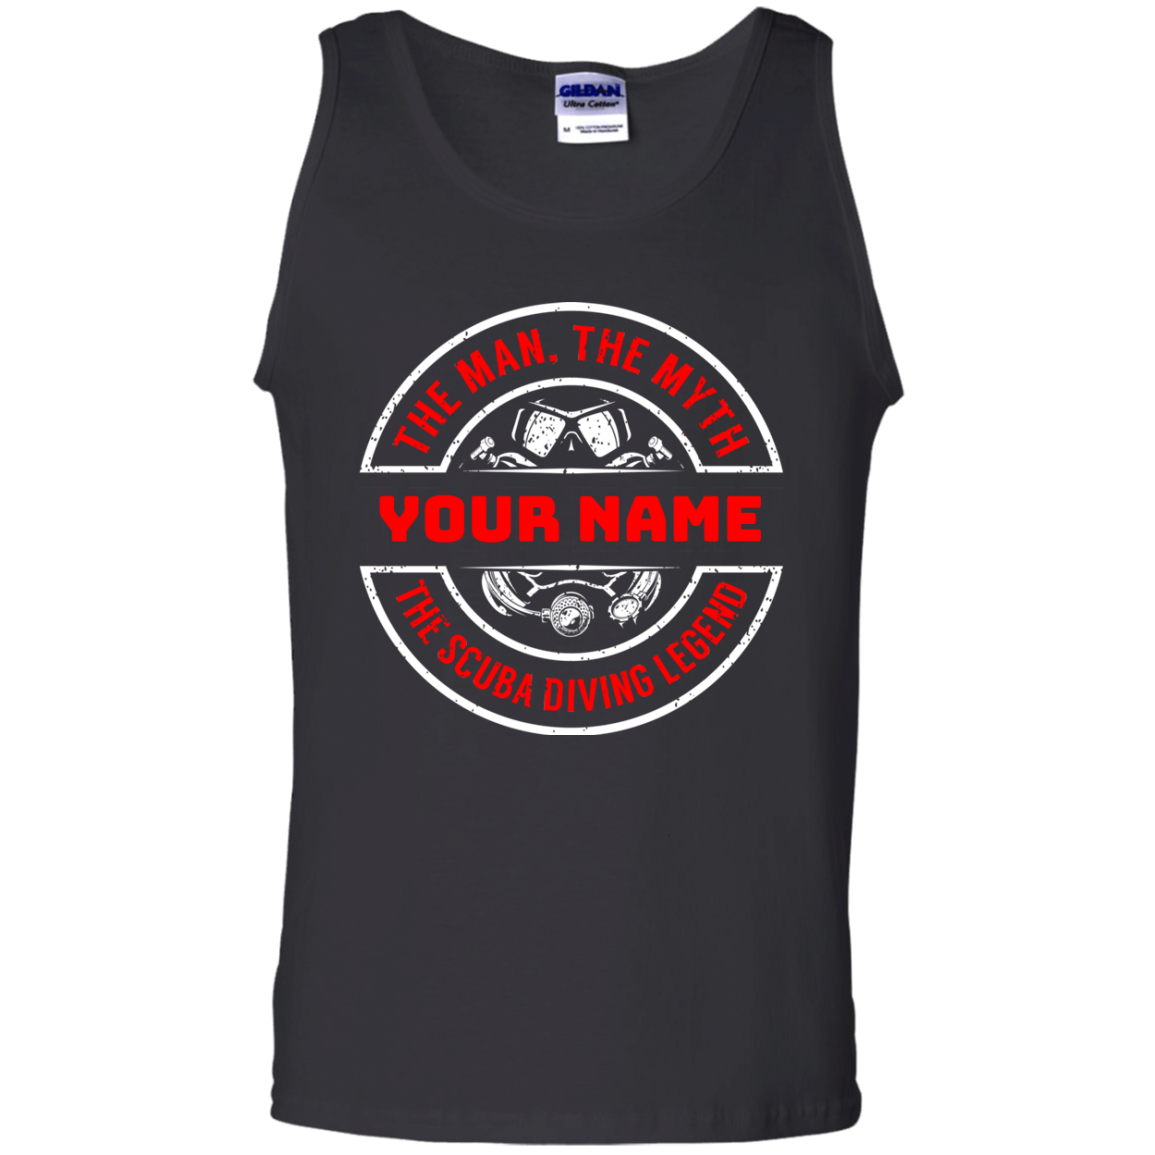 Personalized The Man The Myth The Scuba Legend Tank Tops